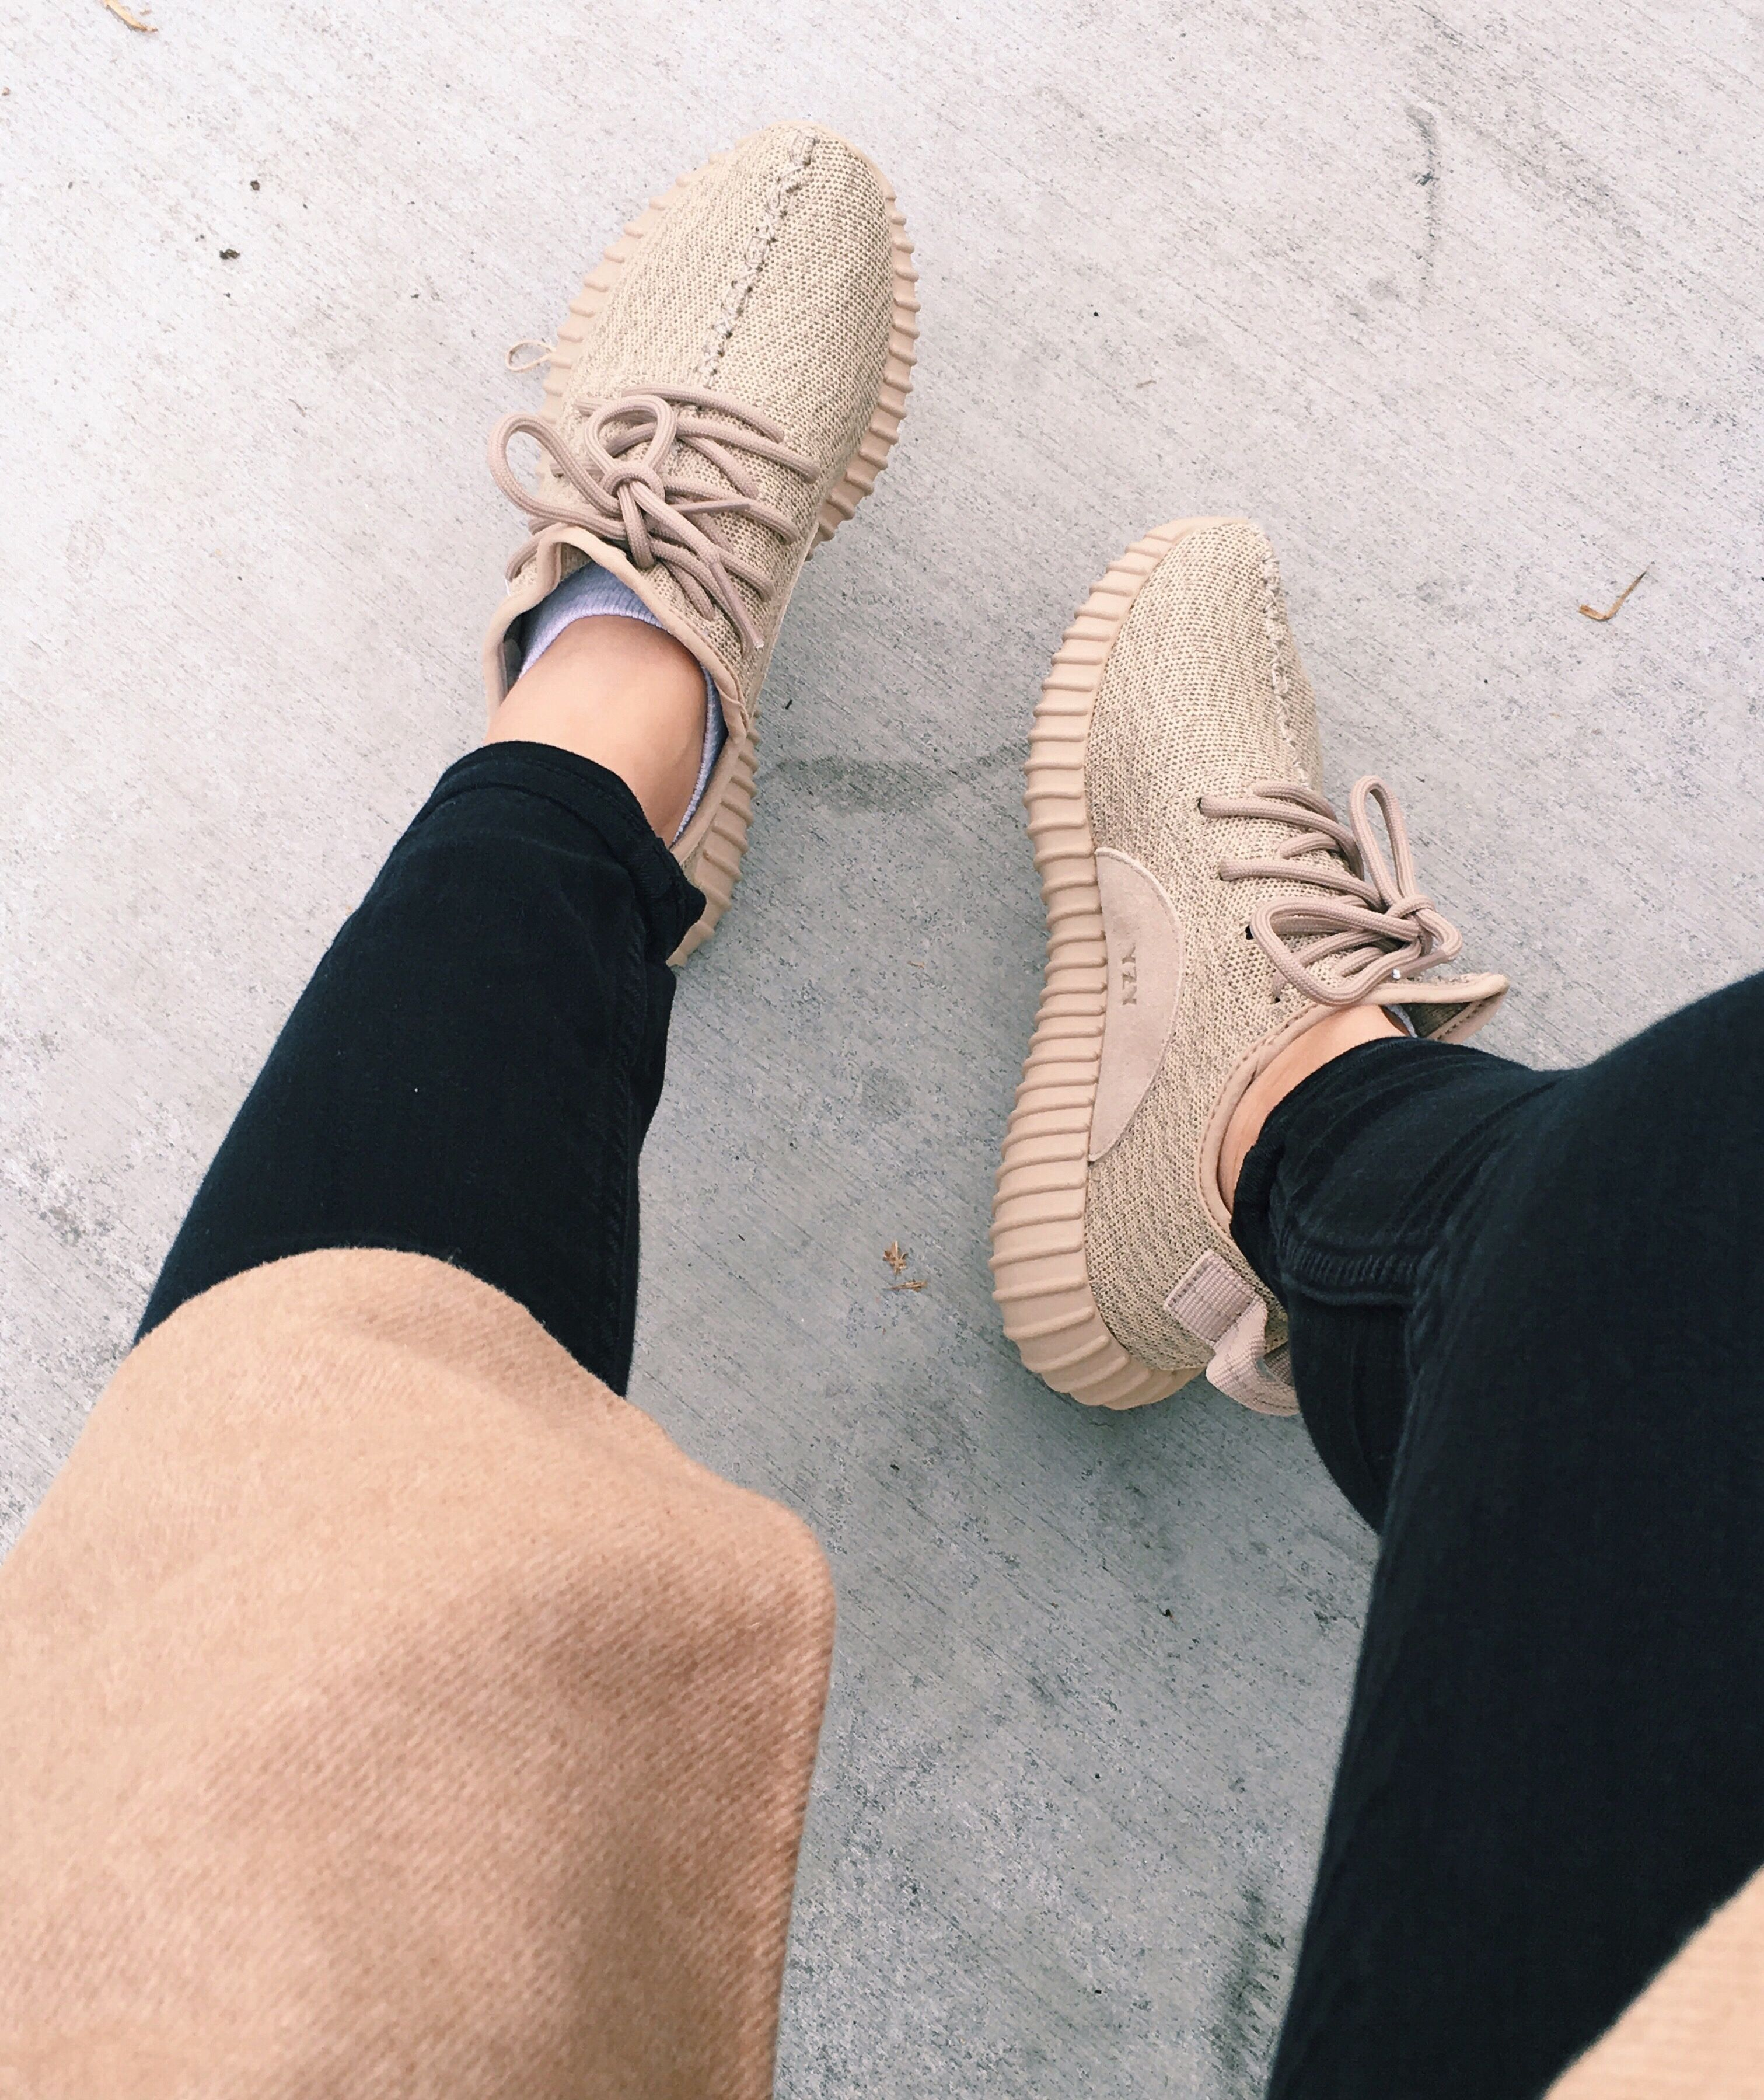 yeezy boost 350 outlet